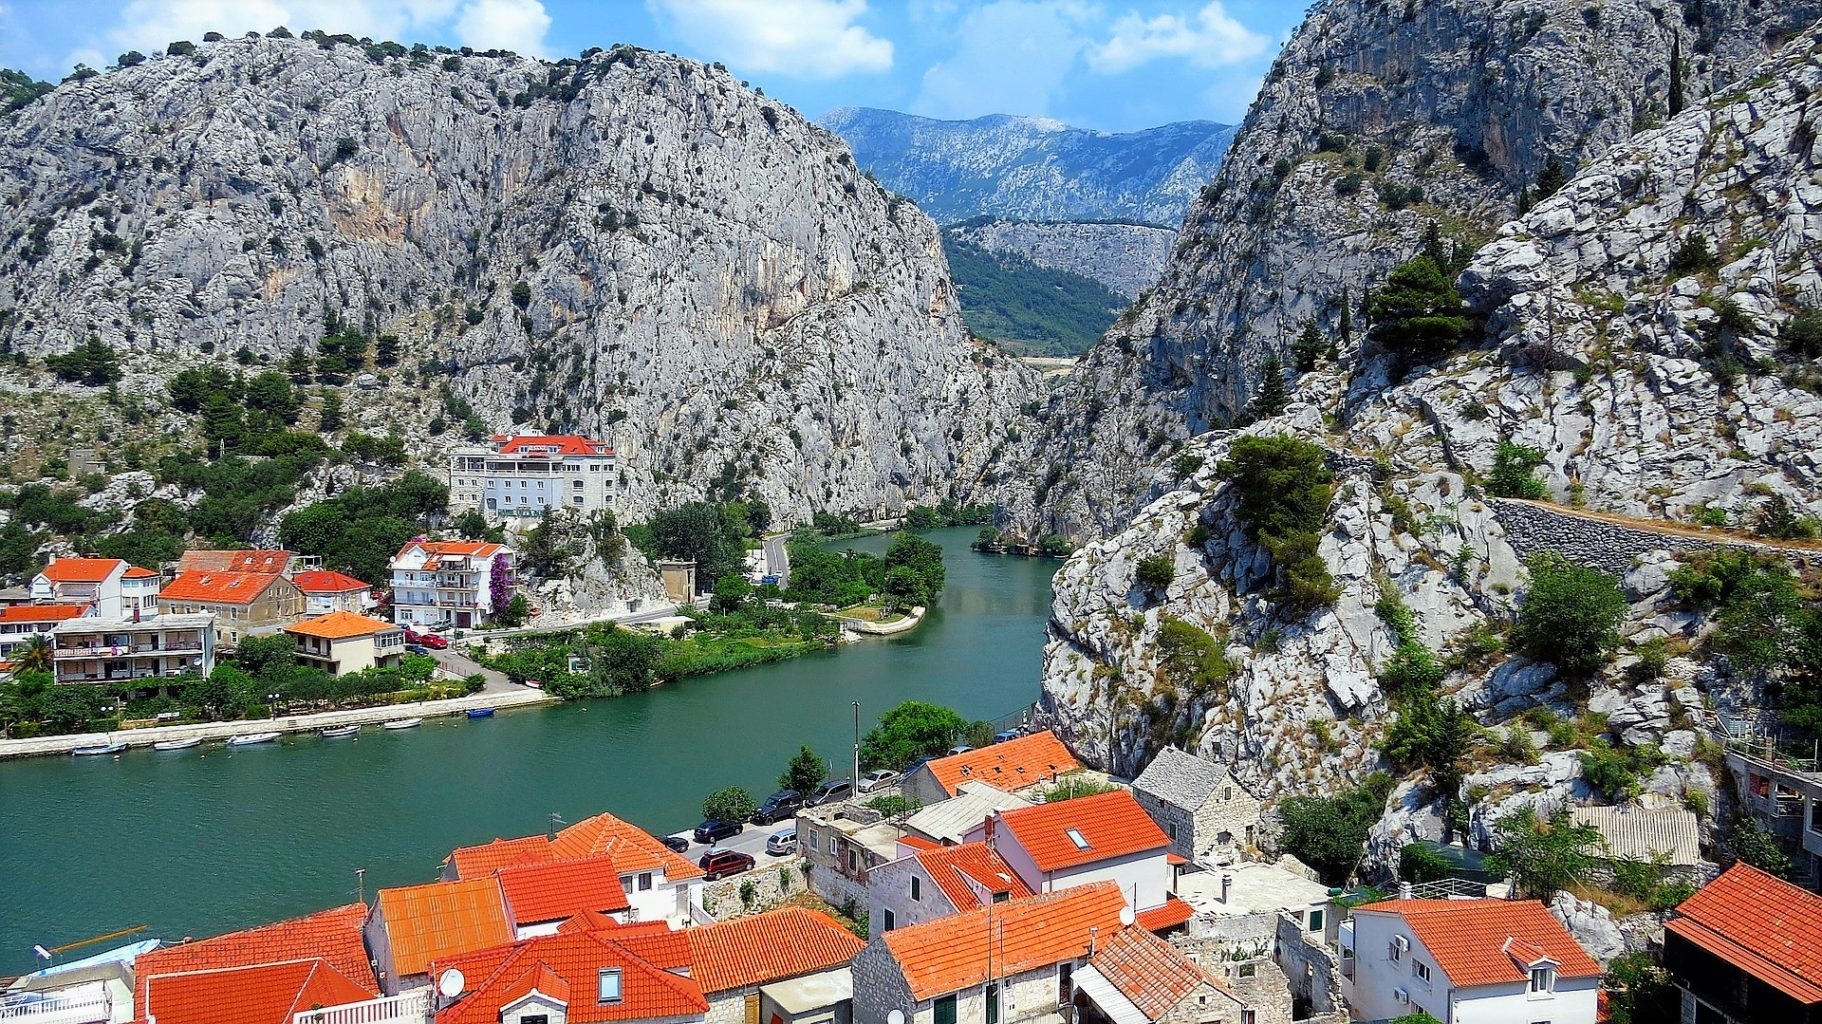 Omiš and the river Cetina